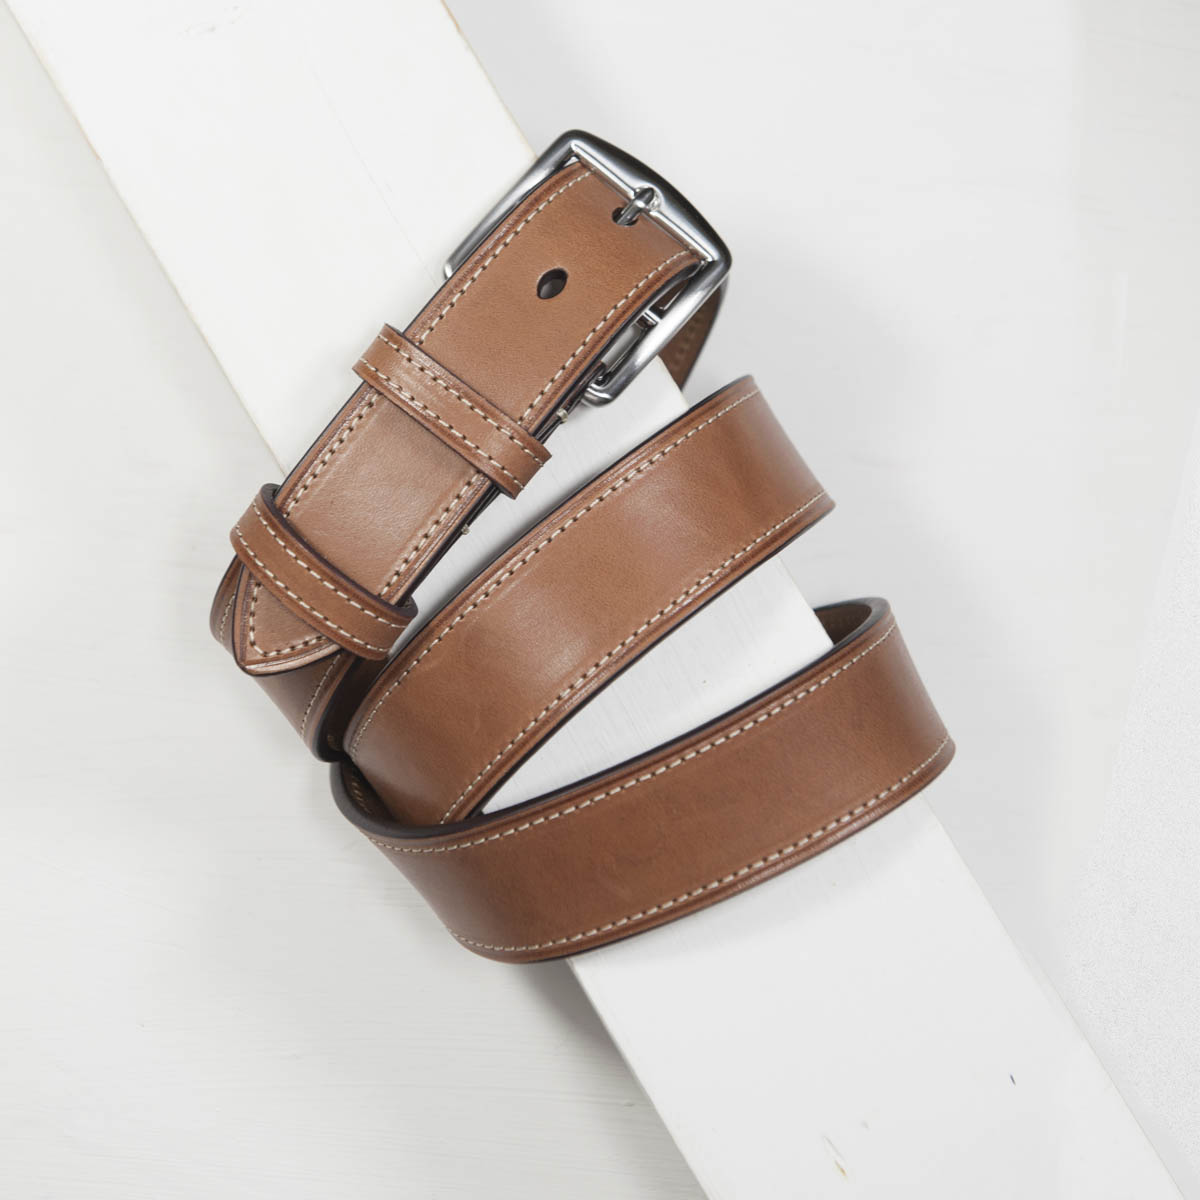 3,5 cm CLASSIC BRIDLE STITCHED LEATHER TAN BELT